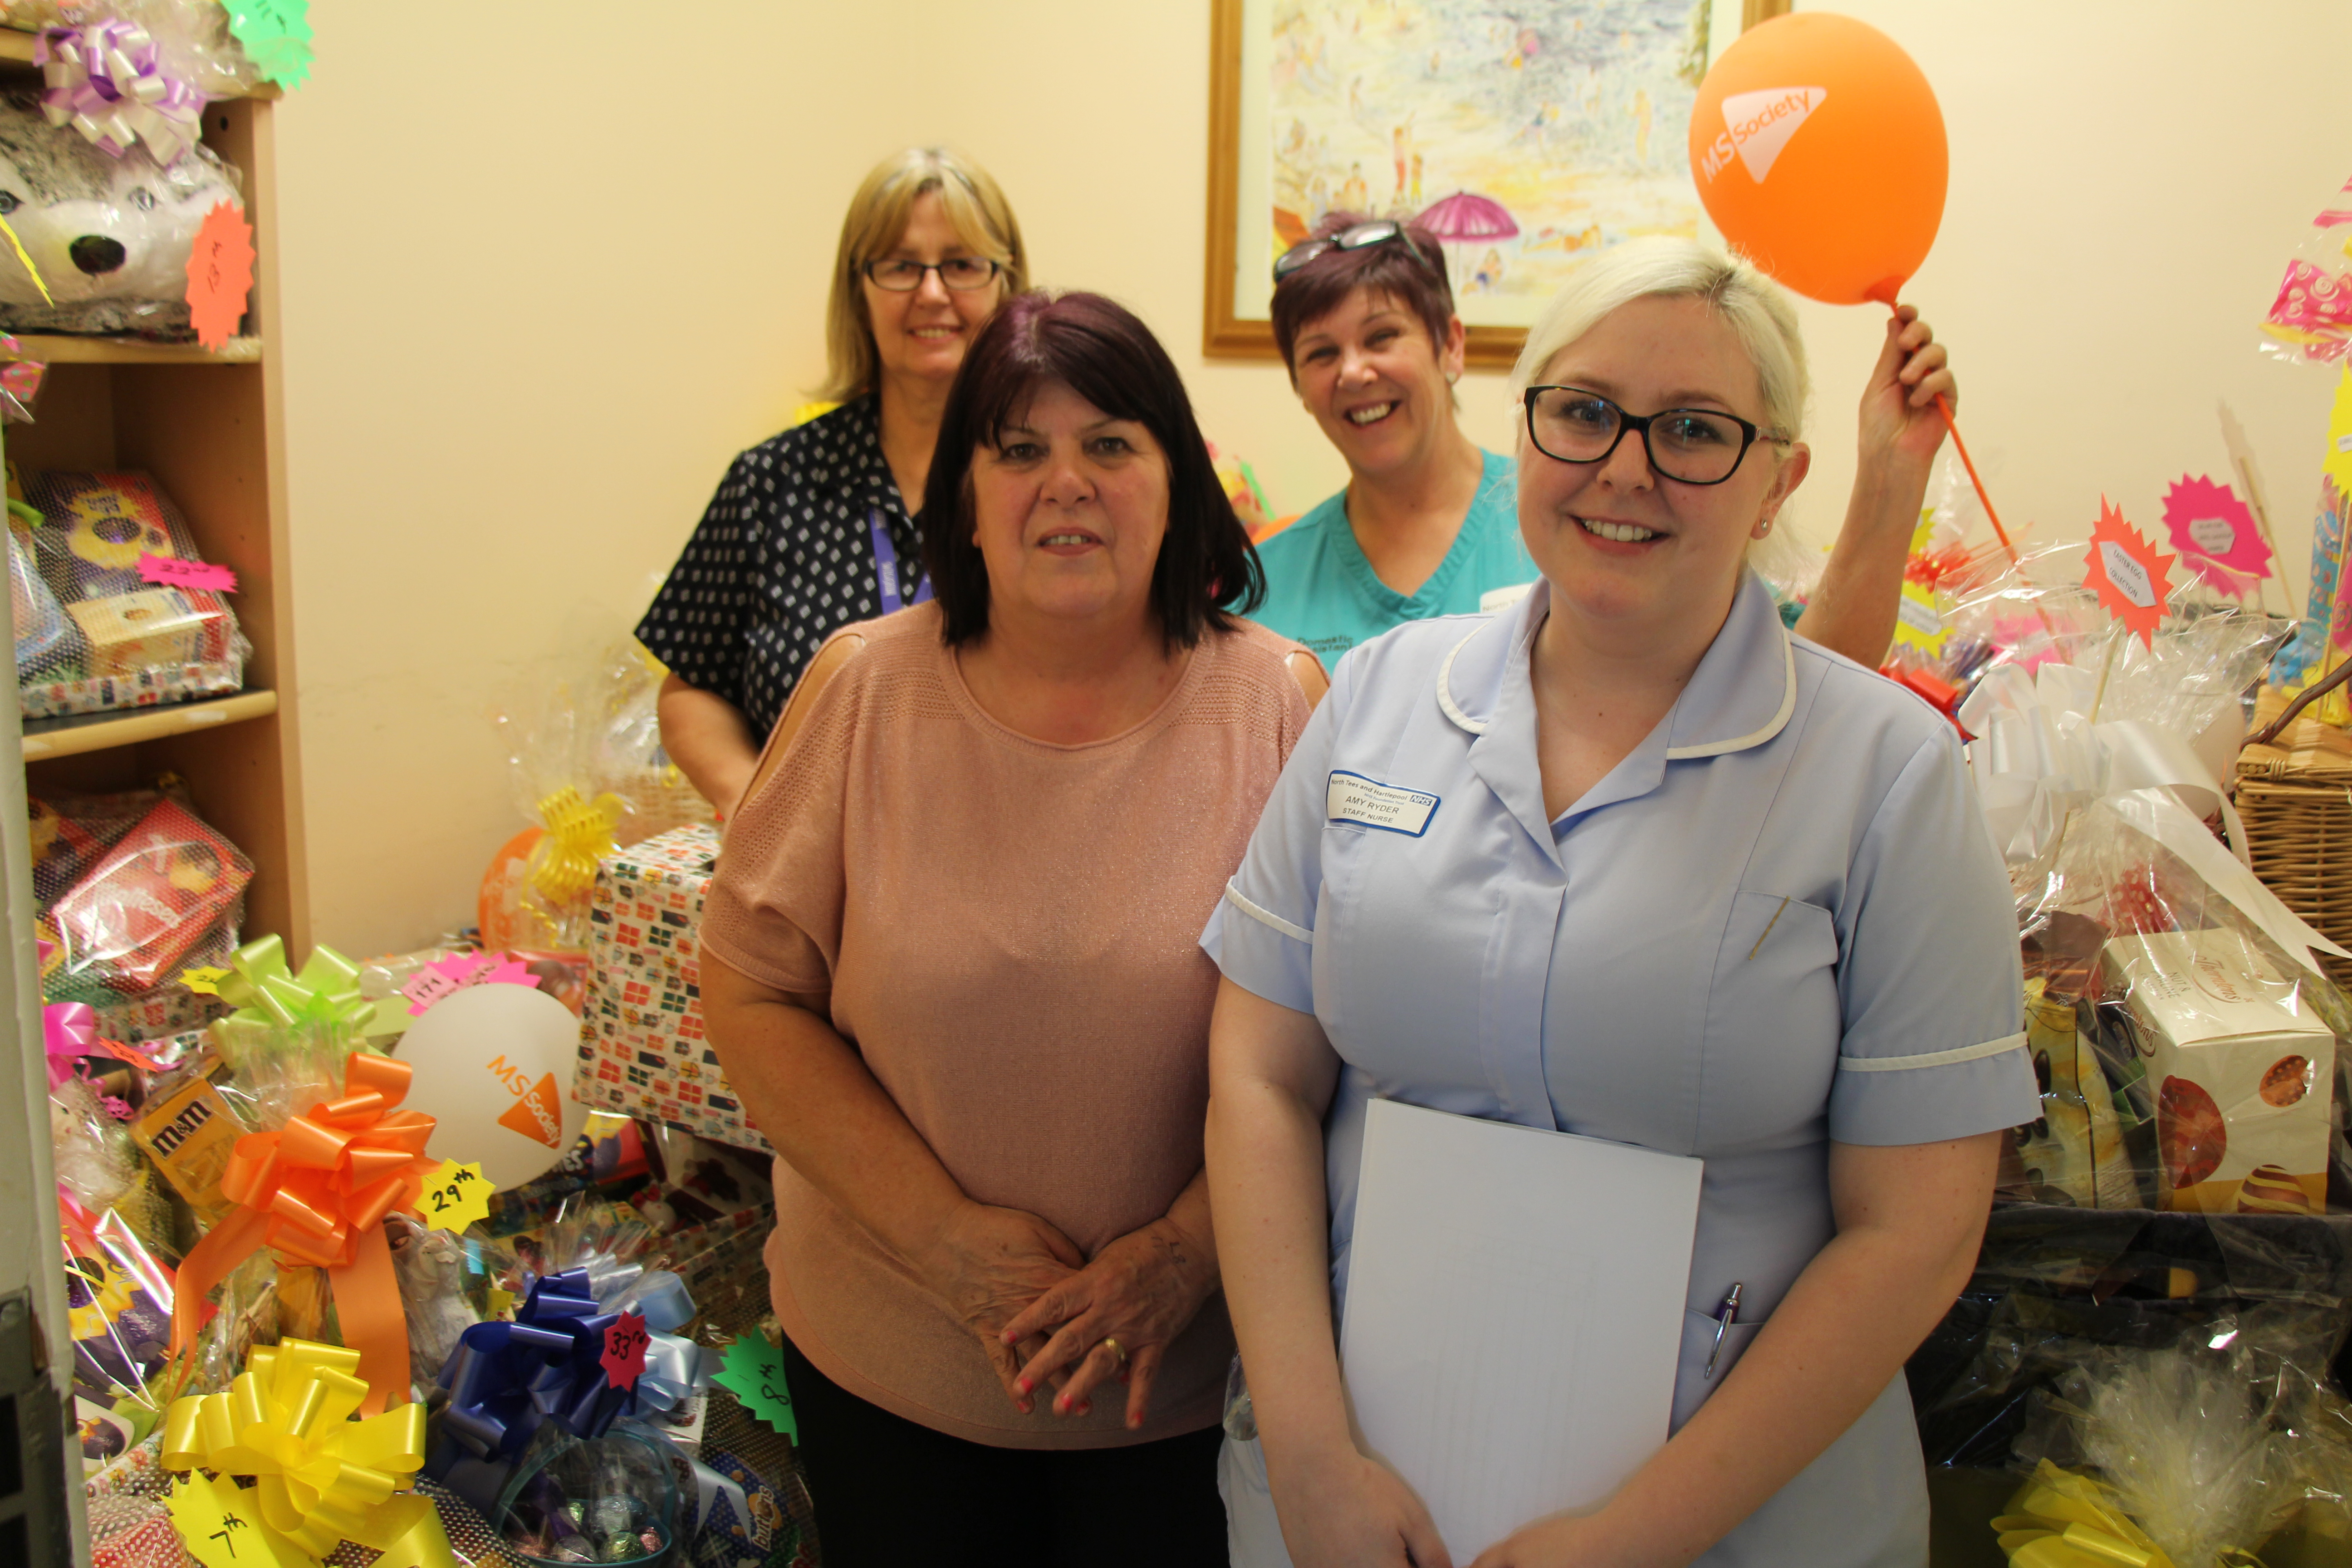 Staff from Wards 32 and 33 with Easter raffle prizes